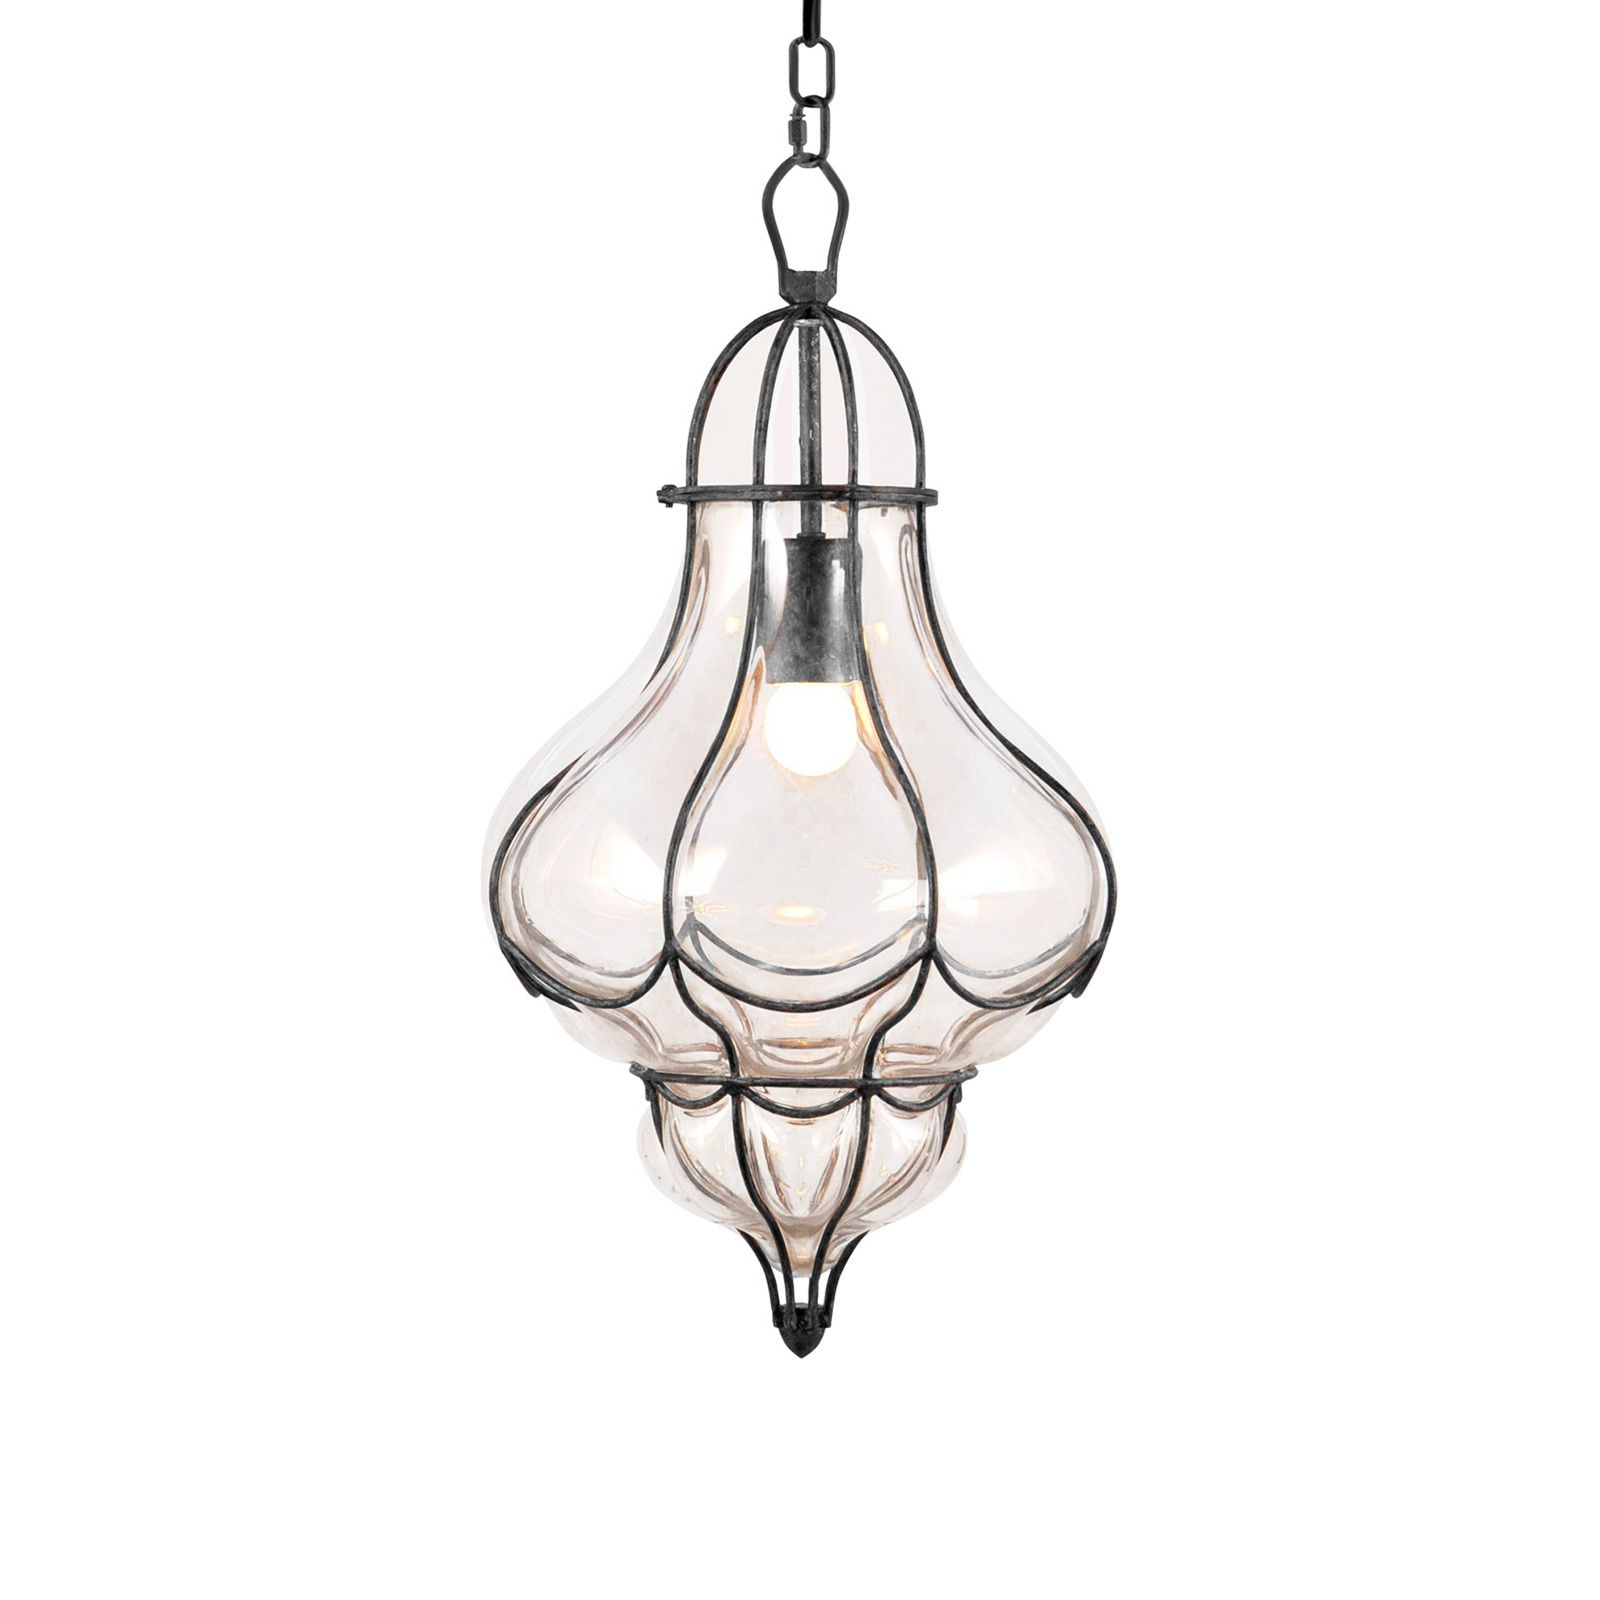 Inspired By Old Fashioned Lamp Designs This Chauncey Pendant Light Features Antiqued Framing And Gorgeously Curved Clear Glass Elegant Design Will